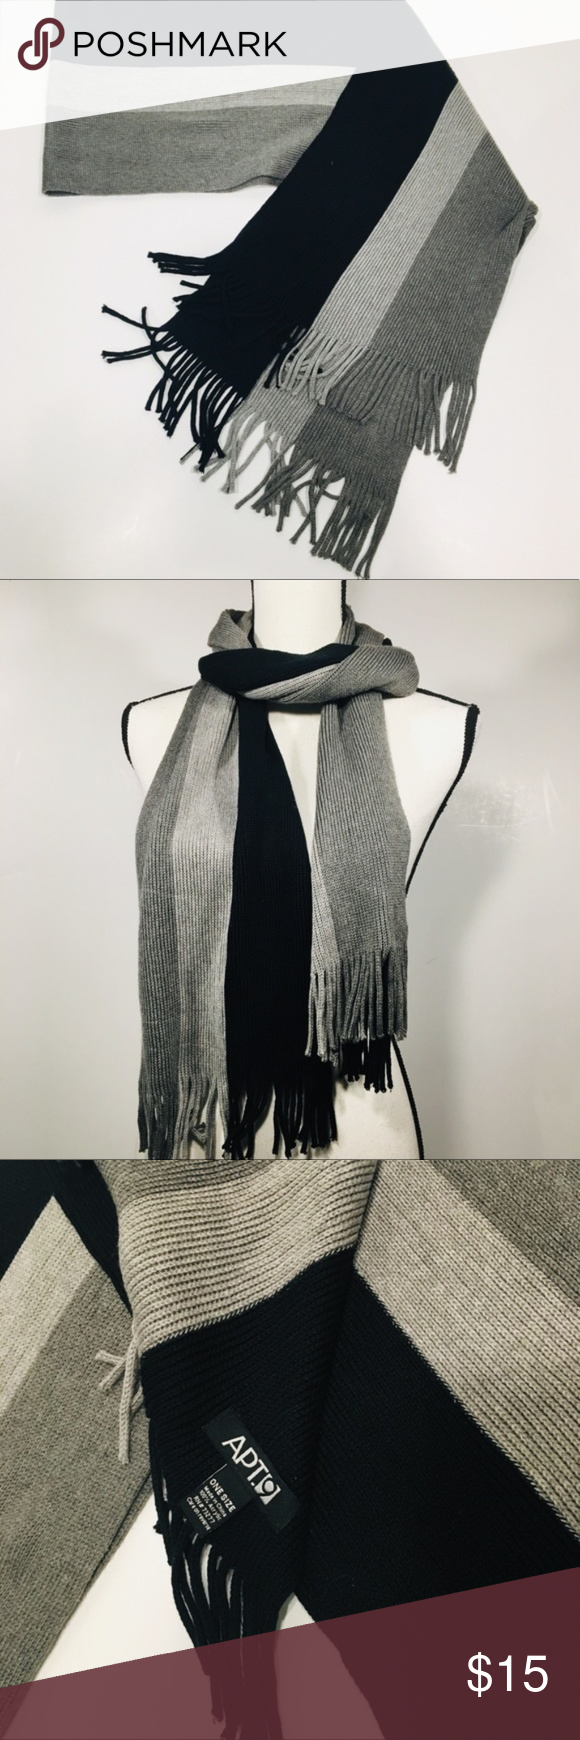 """Photo of Three town knit scarf with fringe Excellent Used Condition  64"""" x 10"""" super …"""